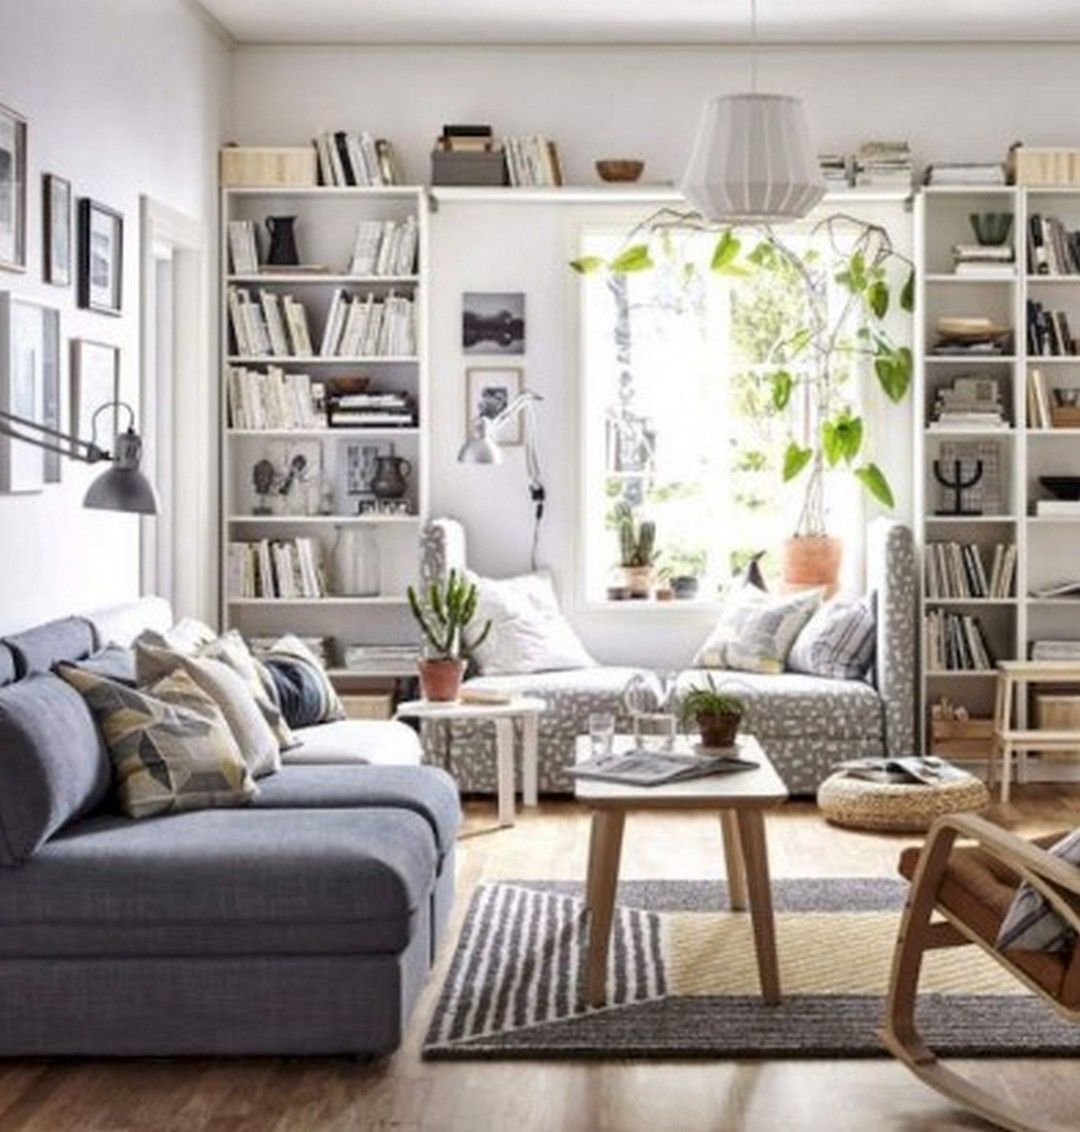 8 Small Living Room Designs And Decorating Ideas To Maximize Your Home Decortheraphy Com Ikea Bookshelves In Library Rooms